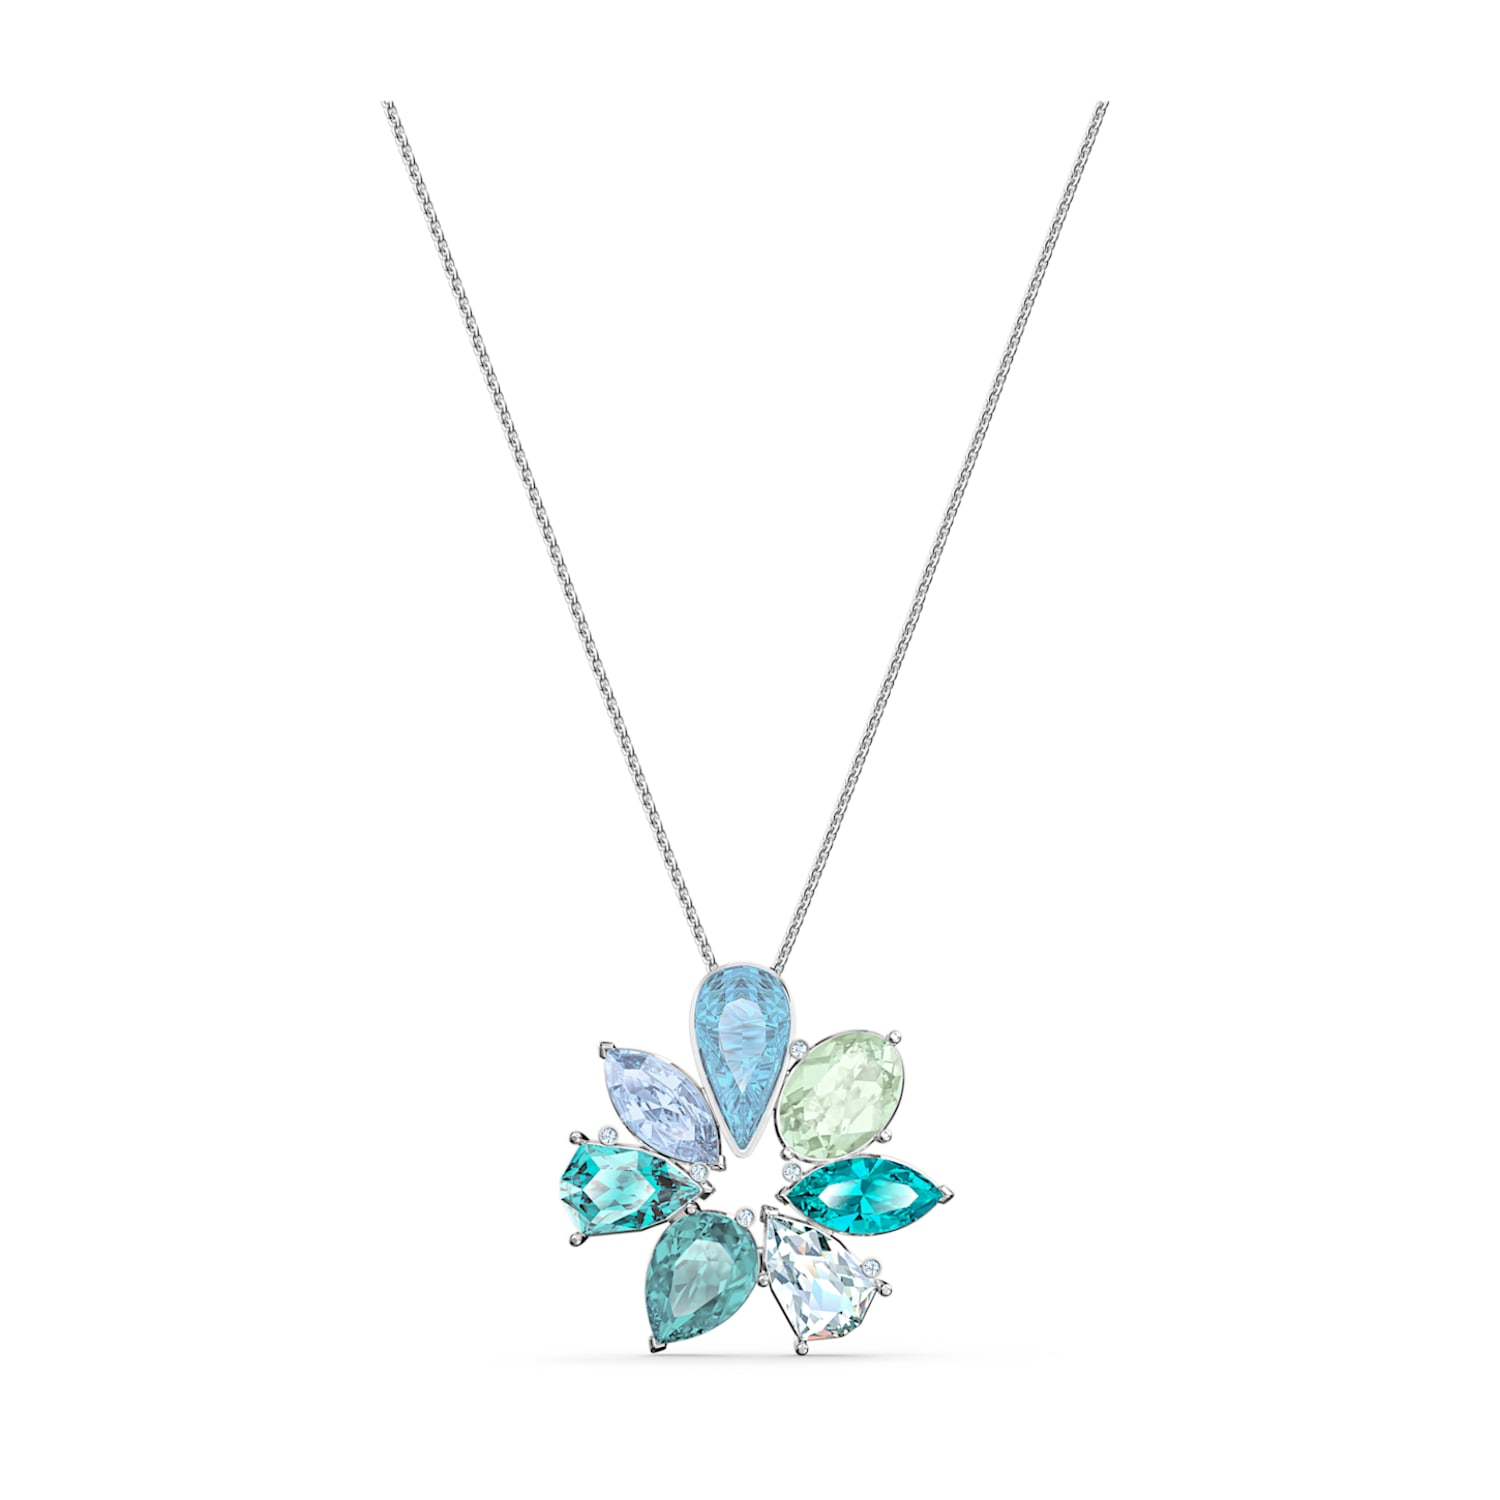 0.78 x 1.17 Inches FB Jewels Solid 925 Sterling Silver Rhodium-Plated Blue Created Opal Wave Pendant